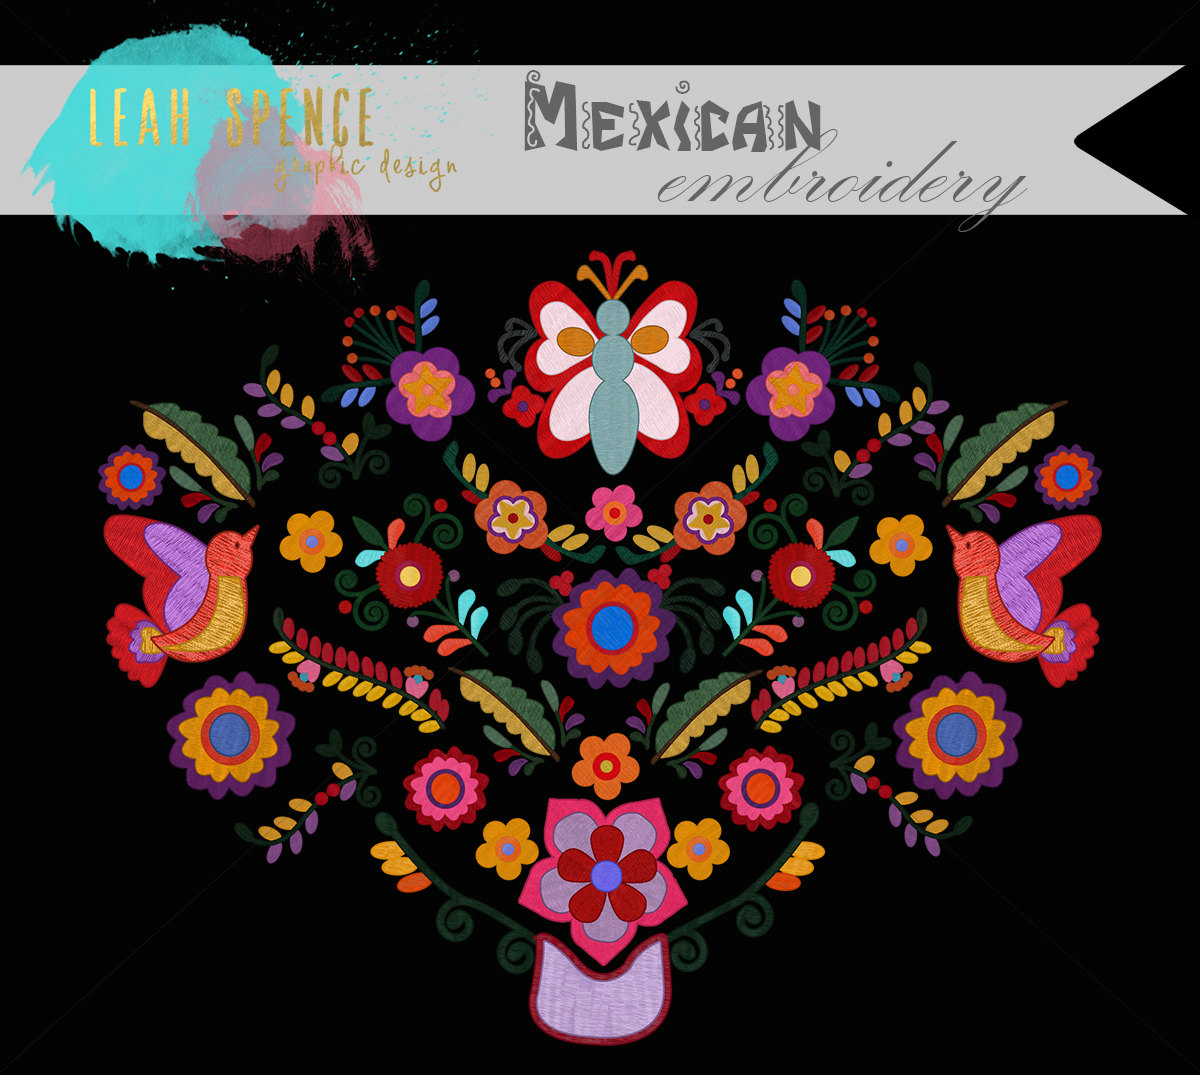 Mexican Embroidery Digital Clip Art Wedding by JustCallMeBlessed.